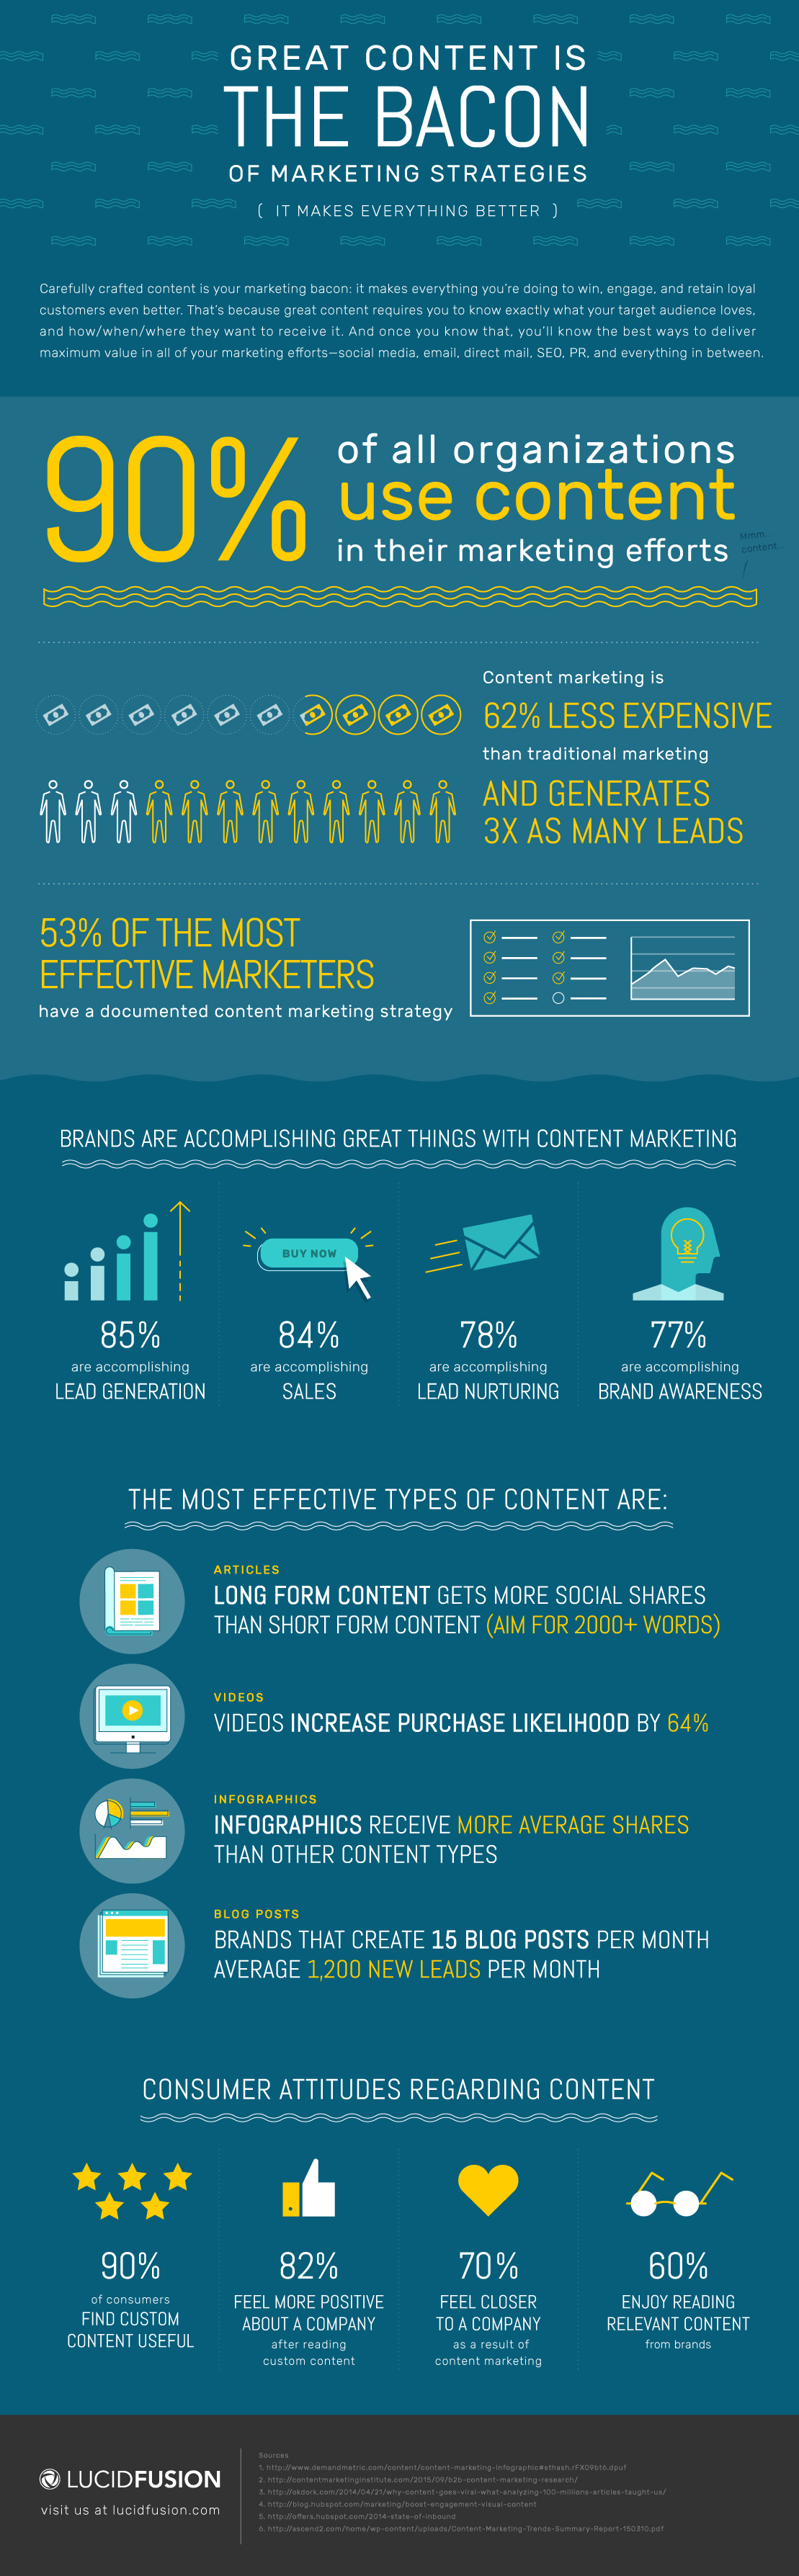 LucidFusion_Great_Content_Infographic